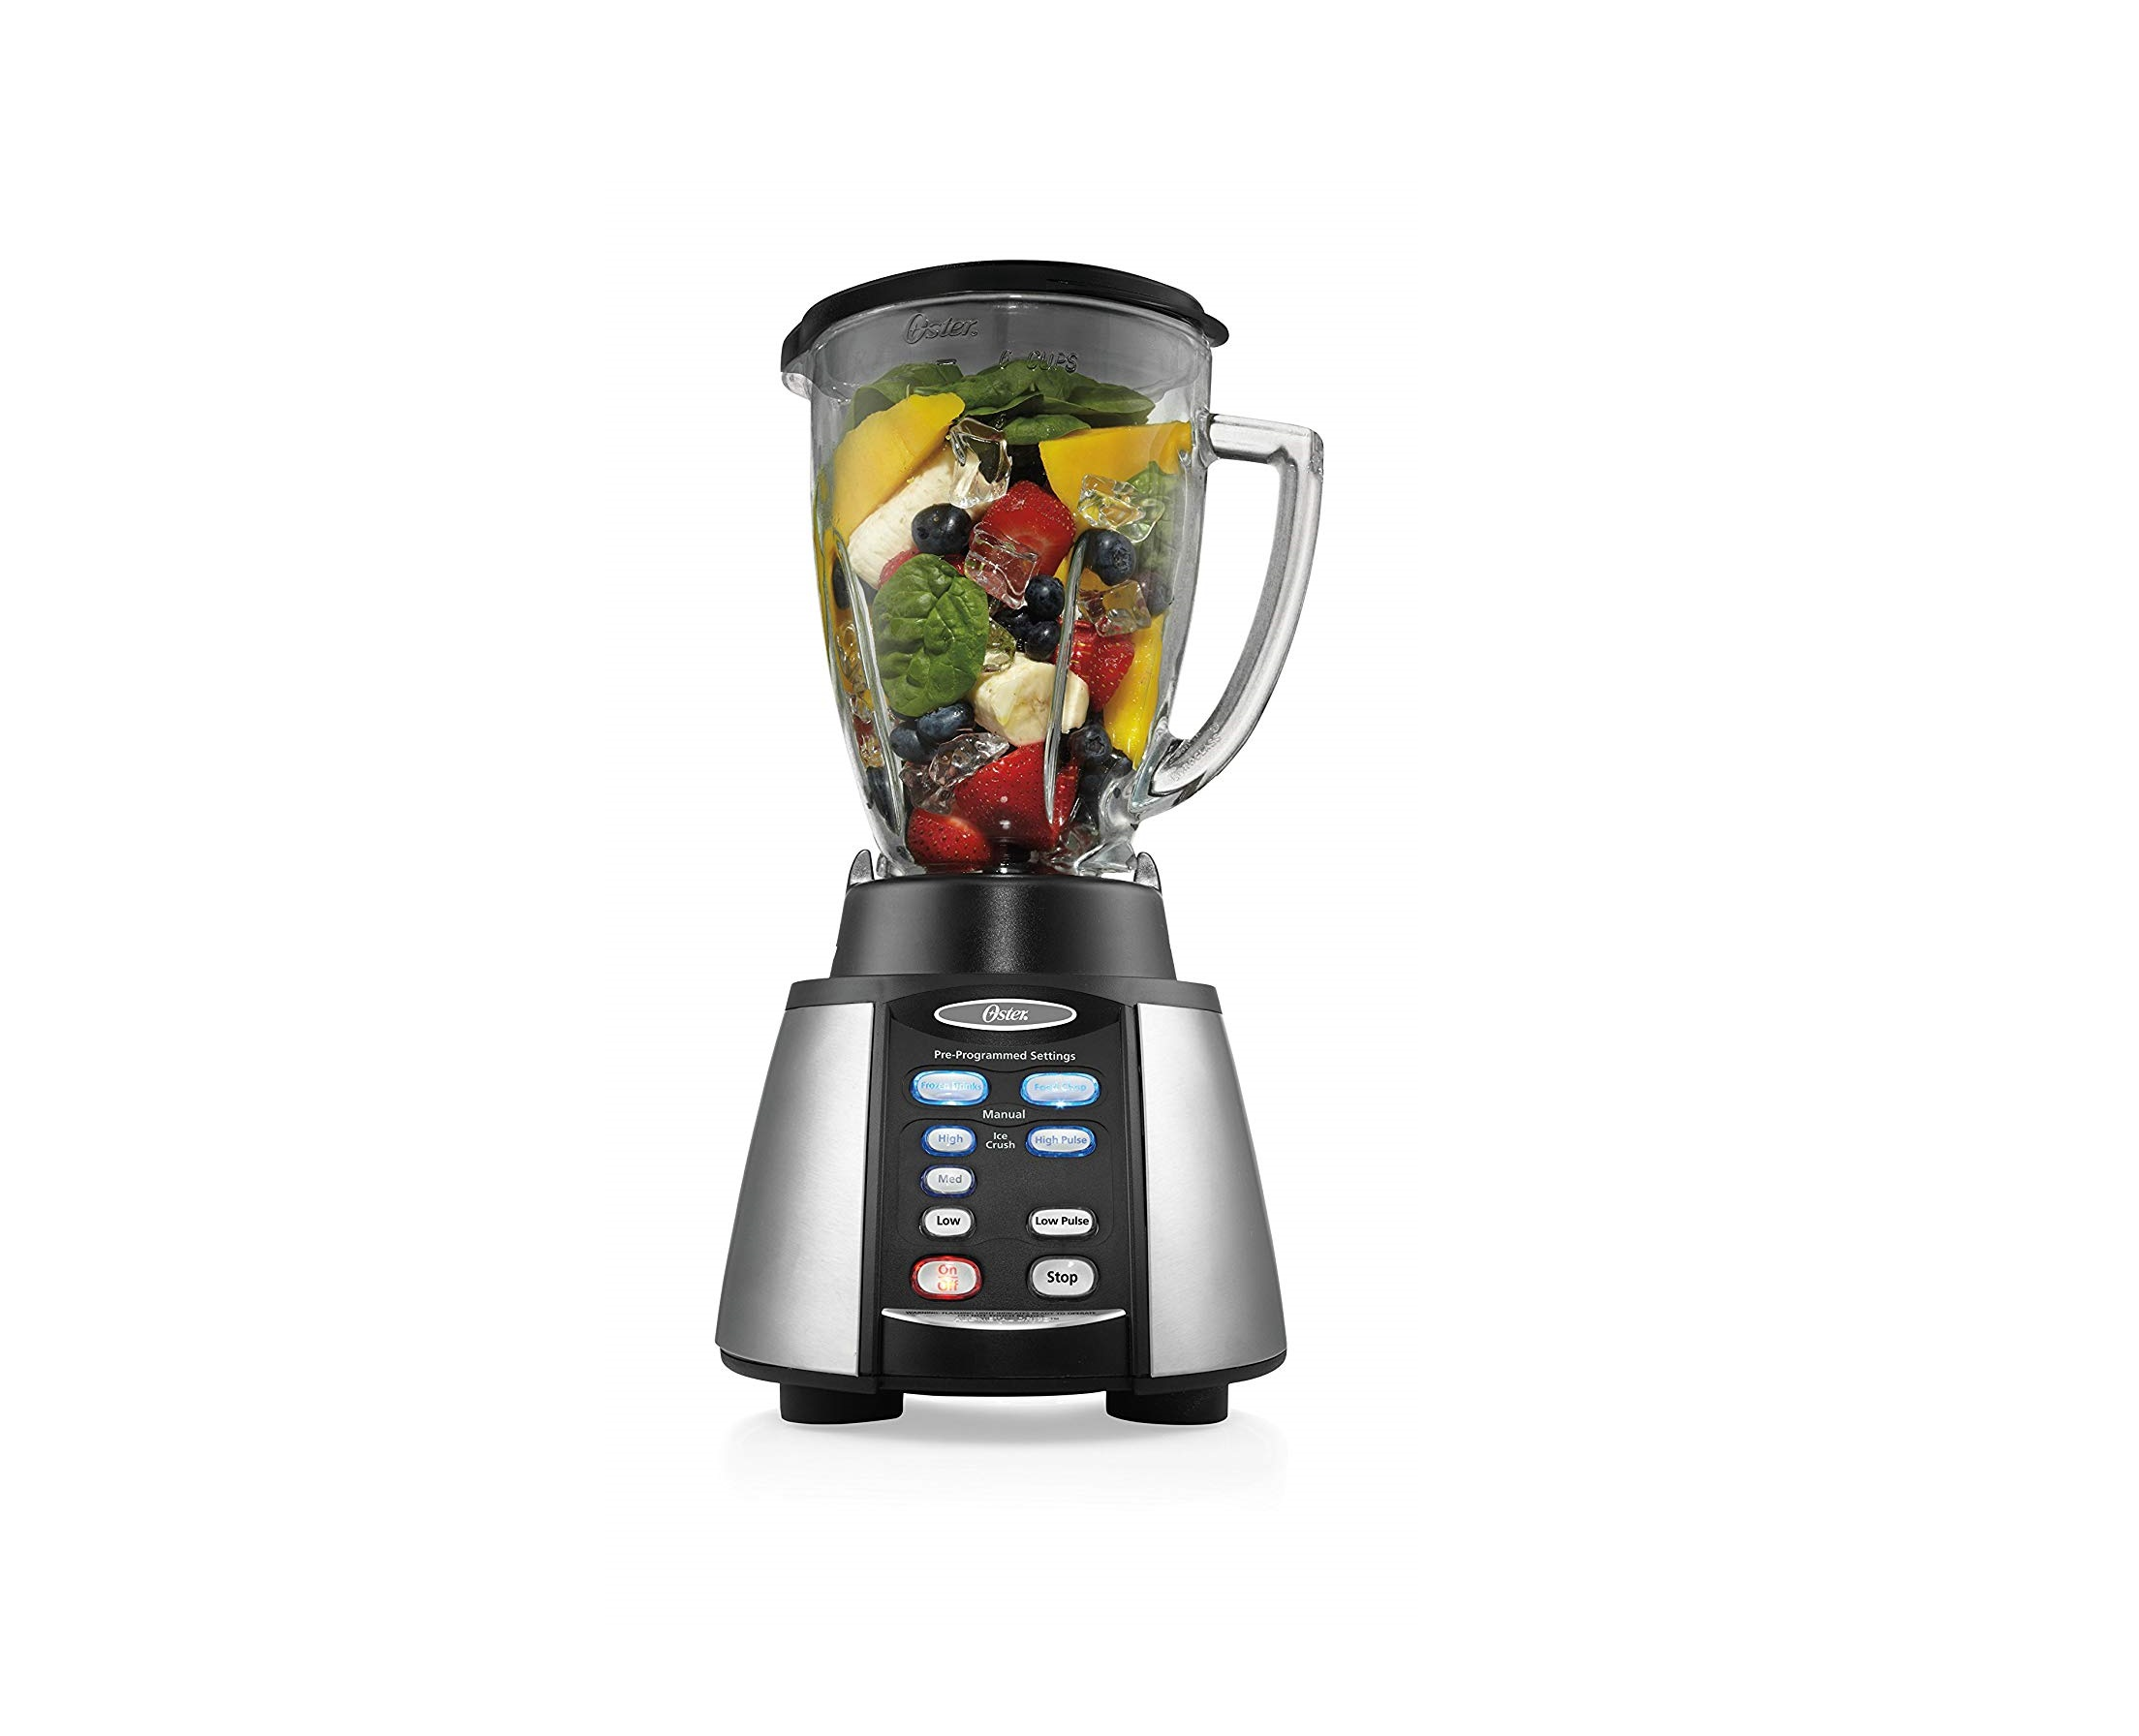 TOP 5 BEST BLENDERS SMOOTHIES IN 2020 REVIEWS